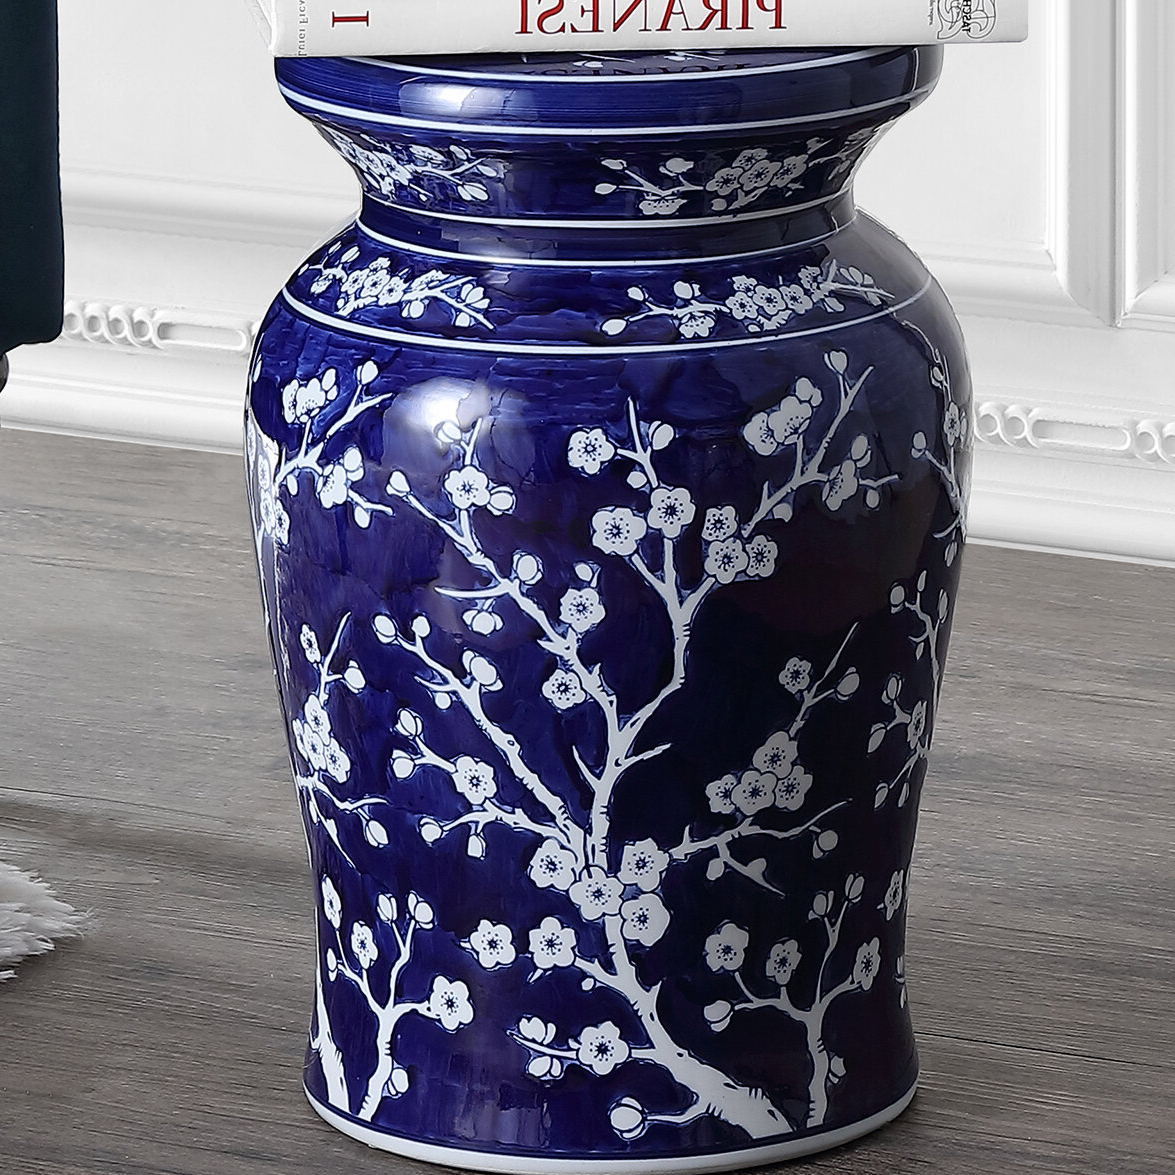 Most Popular Wiese Cherry Blossom Ceramic Garden Stools For Williar Cherry Blossom Ceramic Garden Stool (View 3 of 30)